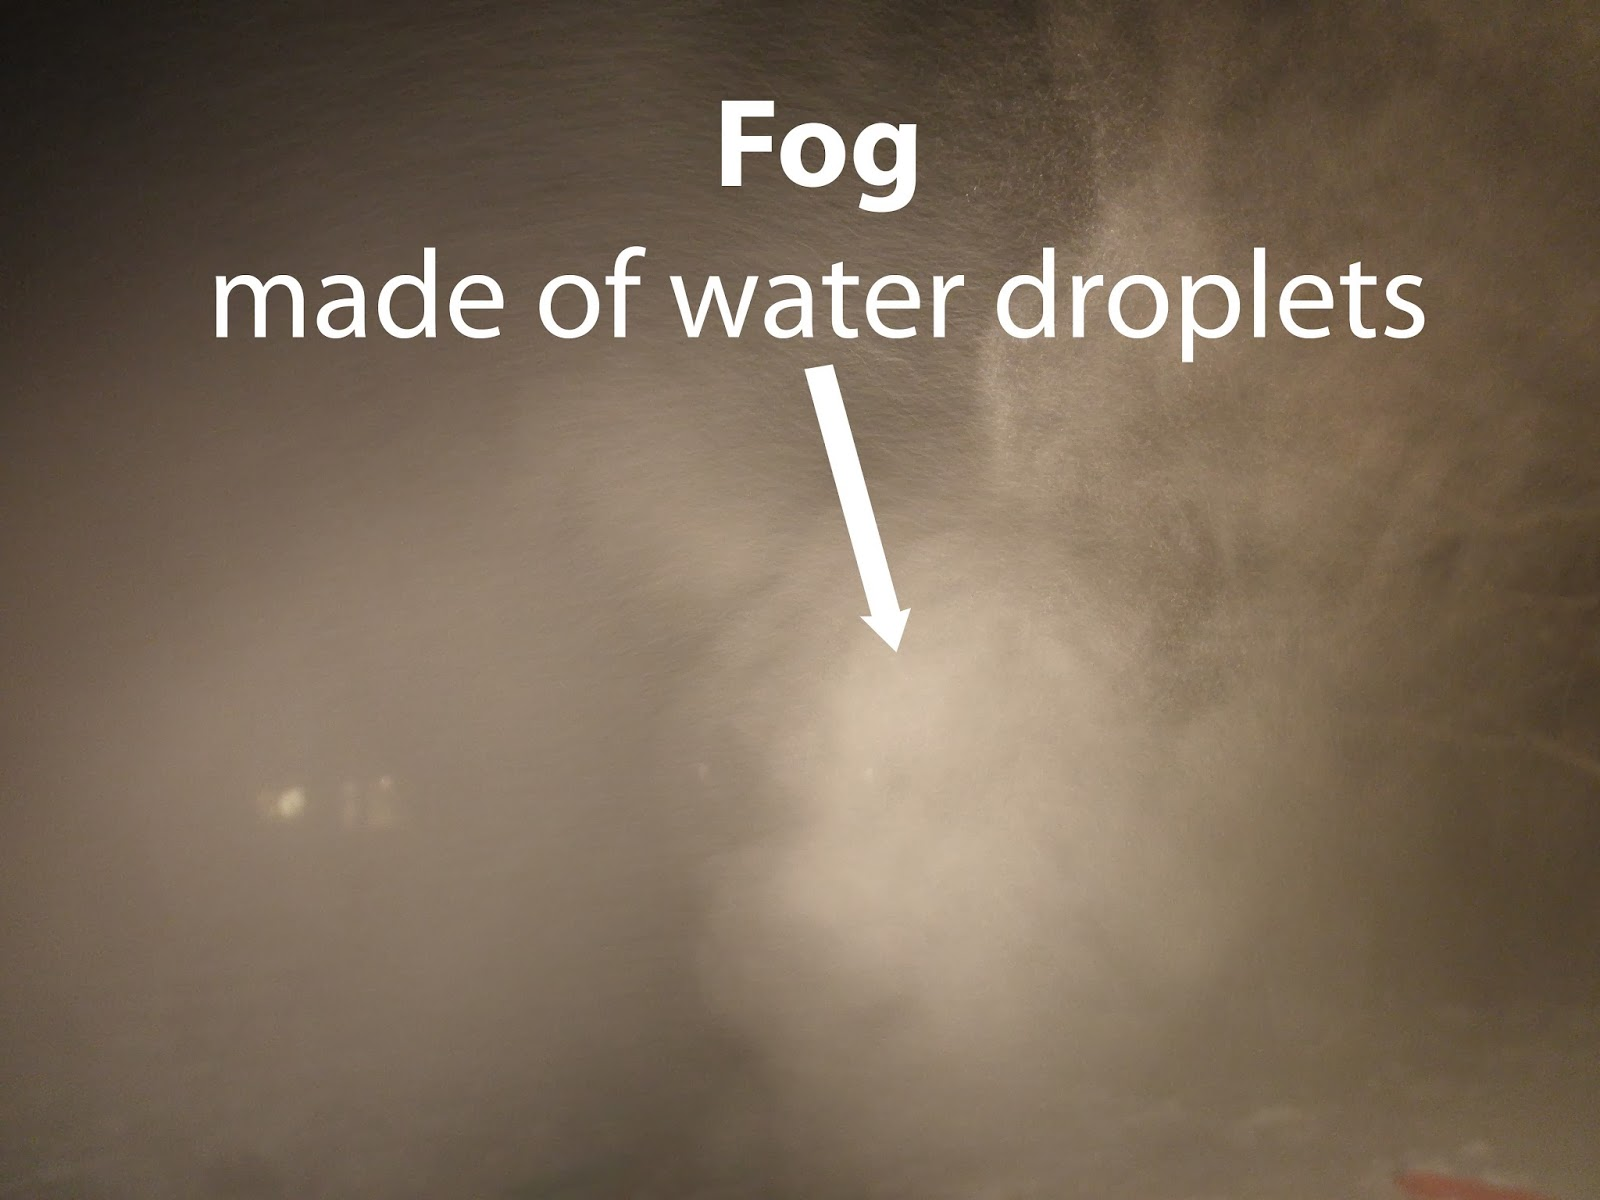 how fog is made